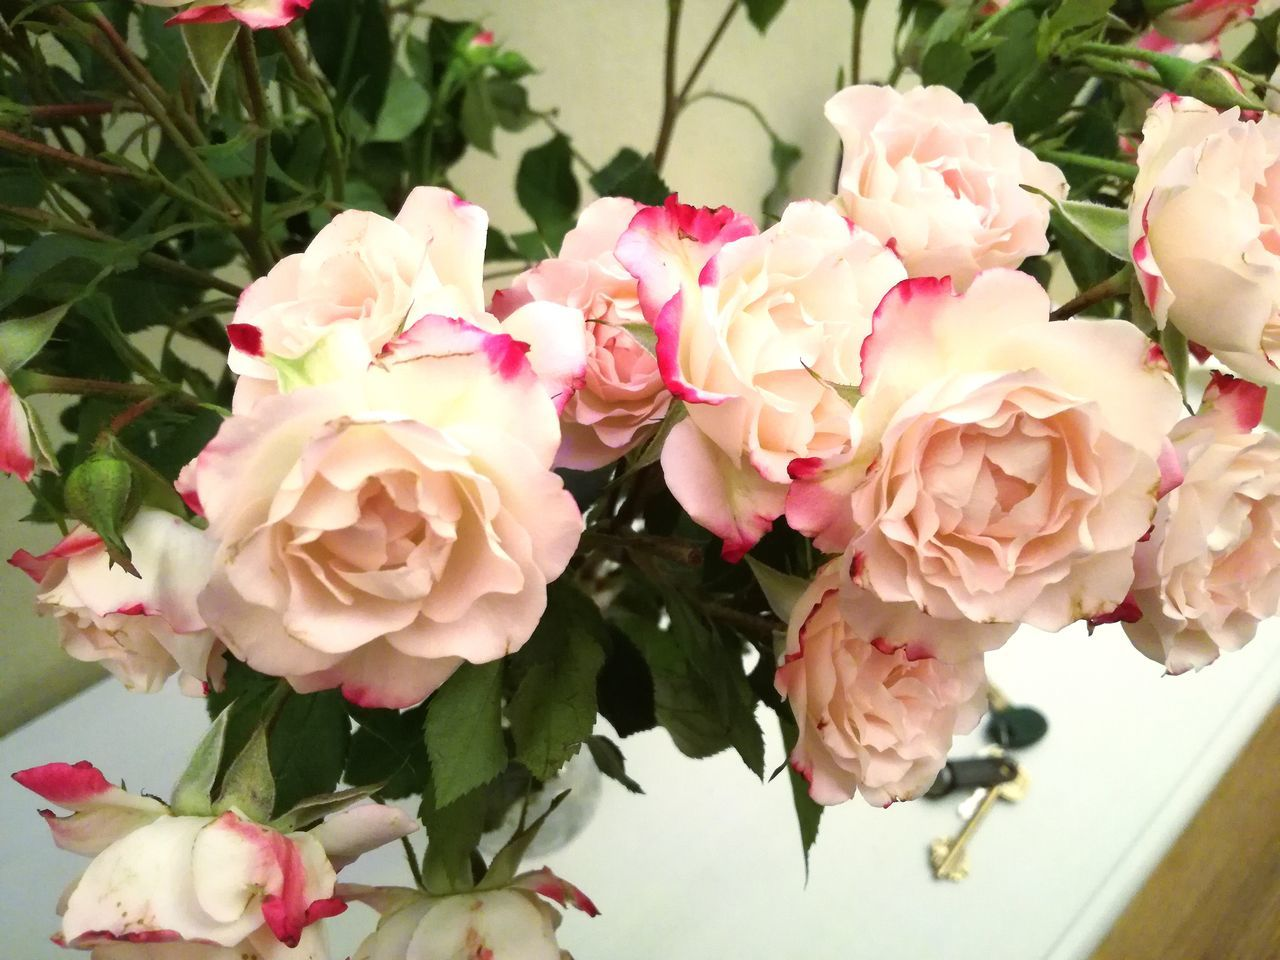 Flower Fragility Nature Beauty In Nature Freshness Plant Petal Growth Flower Head Leaf Close-up No People Pale Pink Day Flowers,Plants & Garden White Color White Flower Roses Flowers, Nature And Beauty Roses Flowers  Rose🌹 Rose - Flower